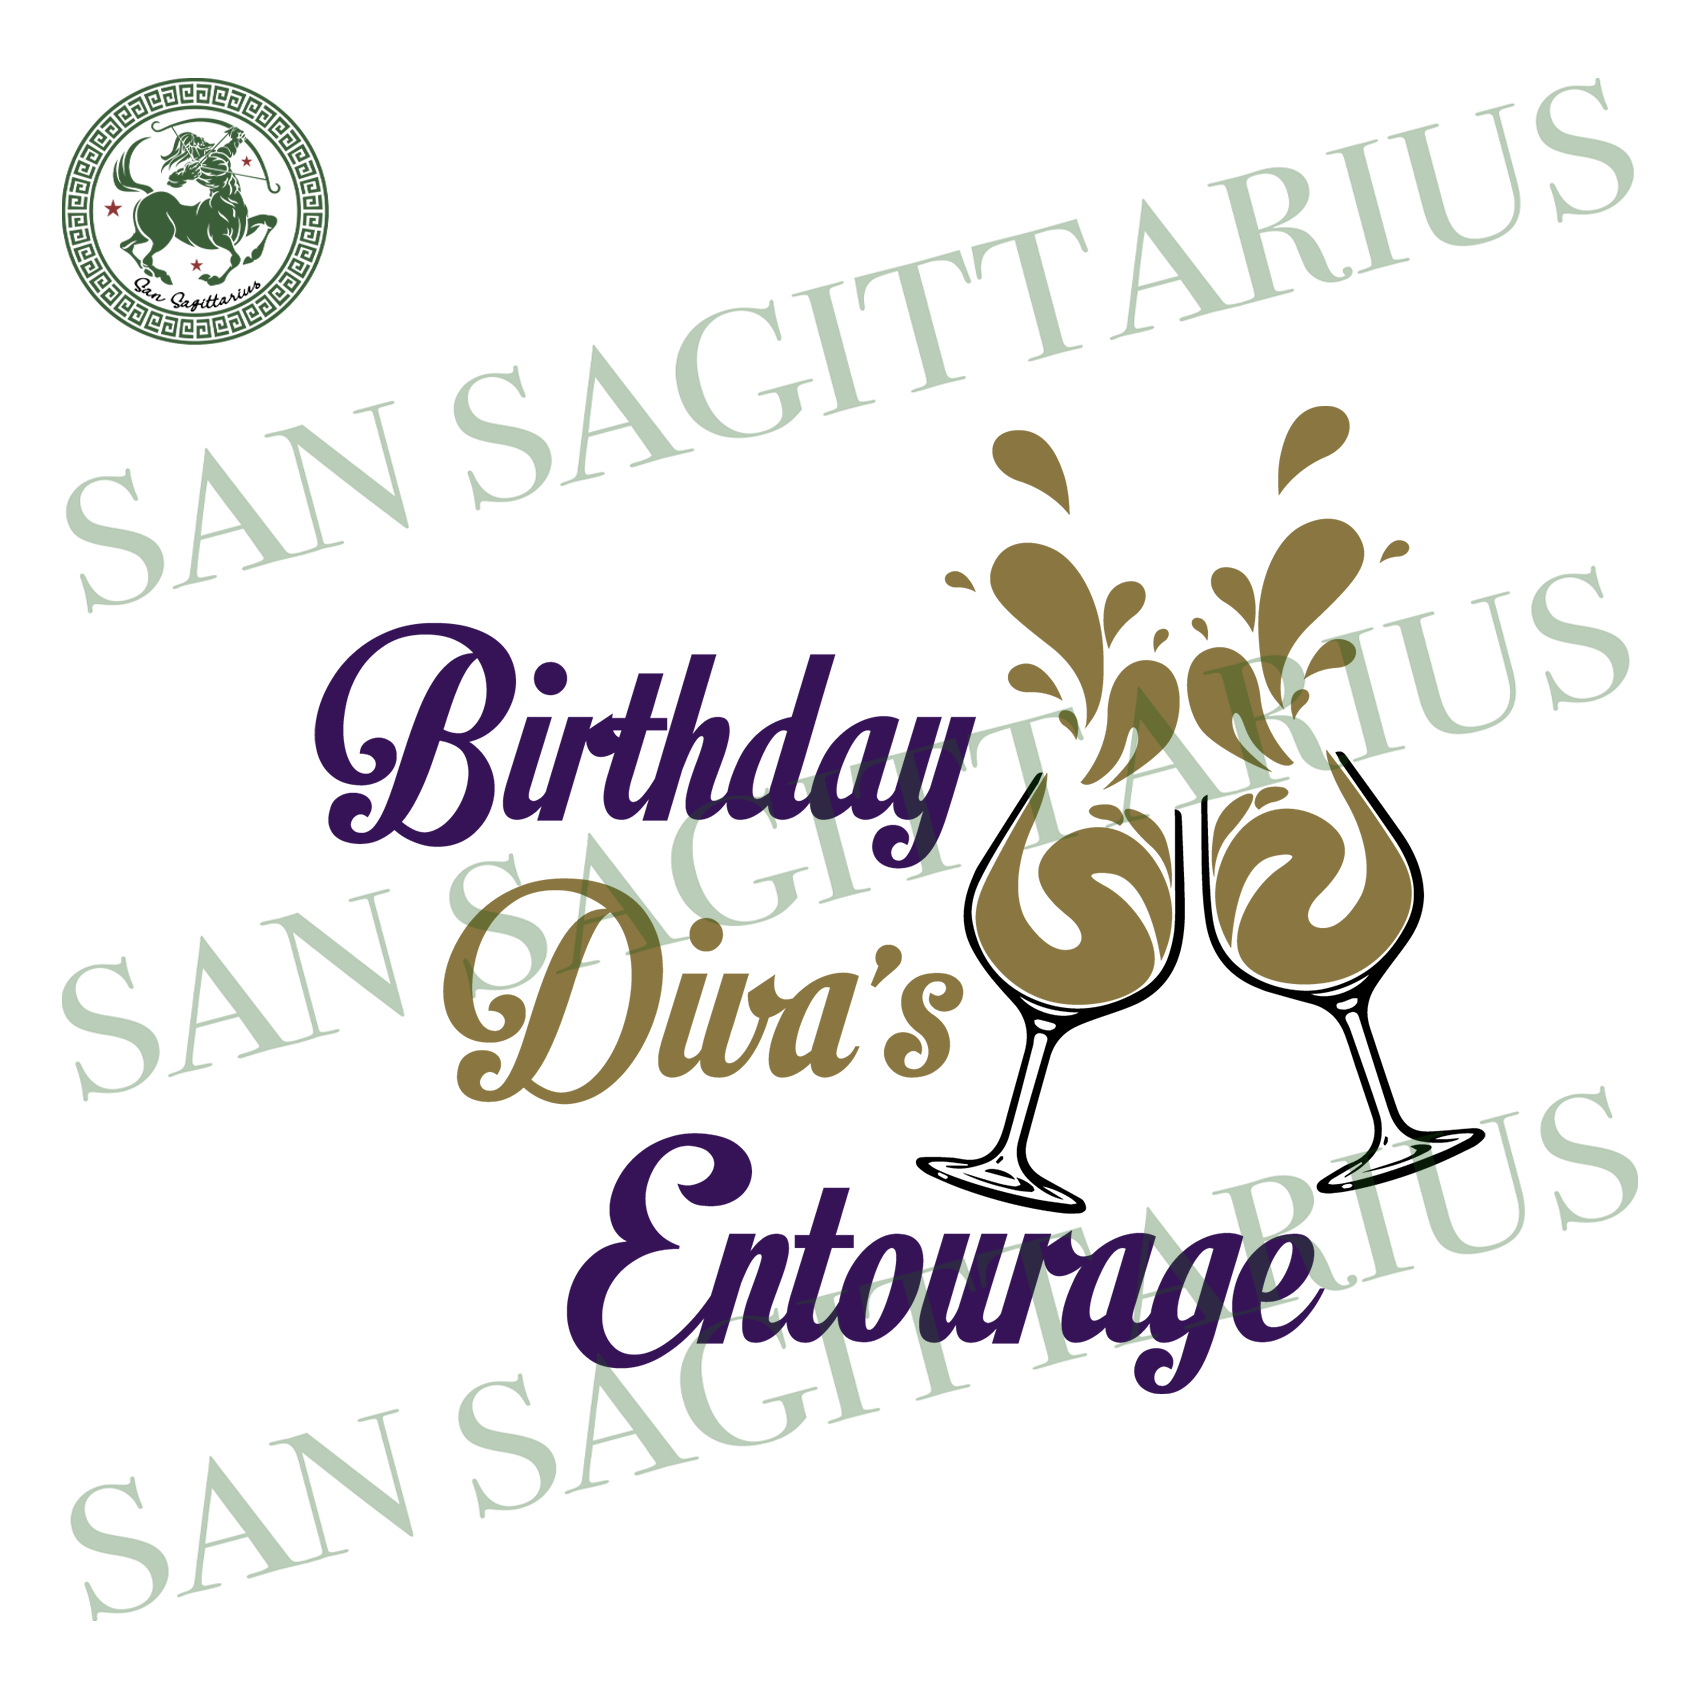 Birthday Divas Entourage, Birthday Svg, Divas Entourage Svg, Entourage Svg, Entourage Birthday, Birthday Party Svg, Drink Wine, Birthday Gift, Diva svg, Girls Entourage, Girls birthday, Divas